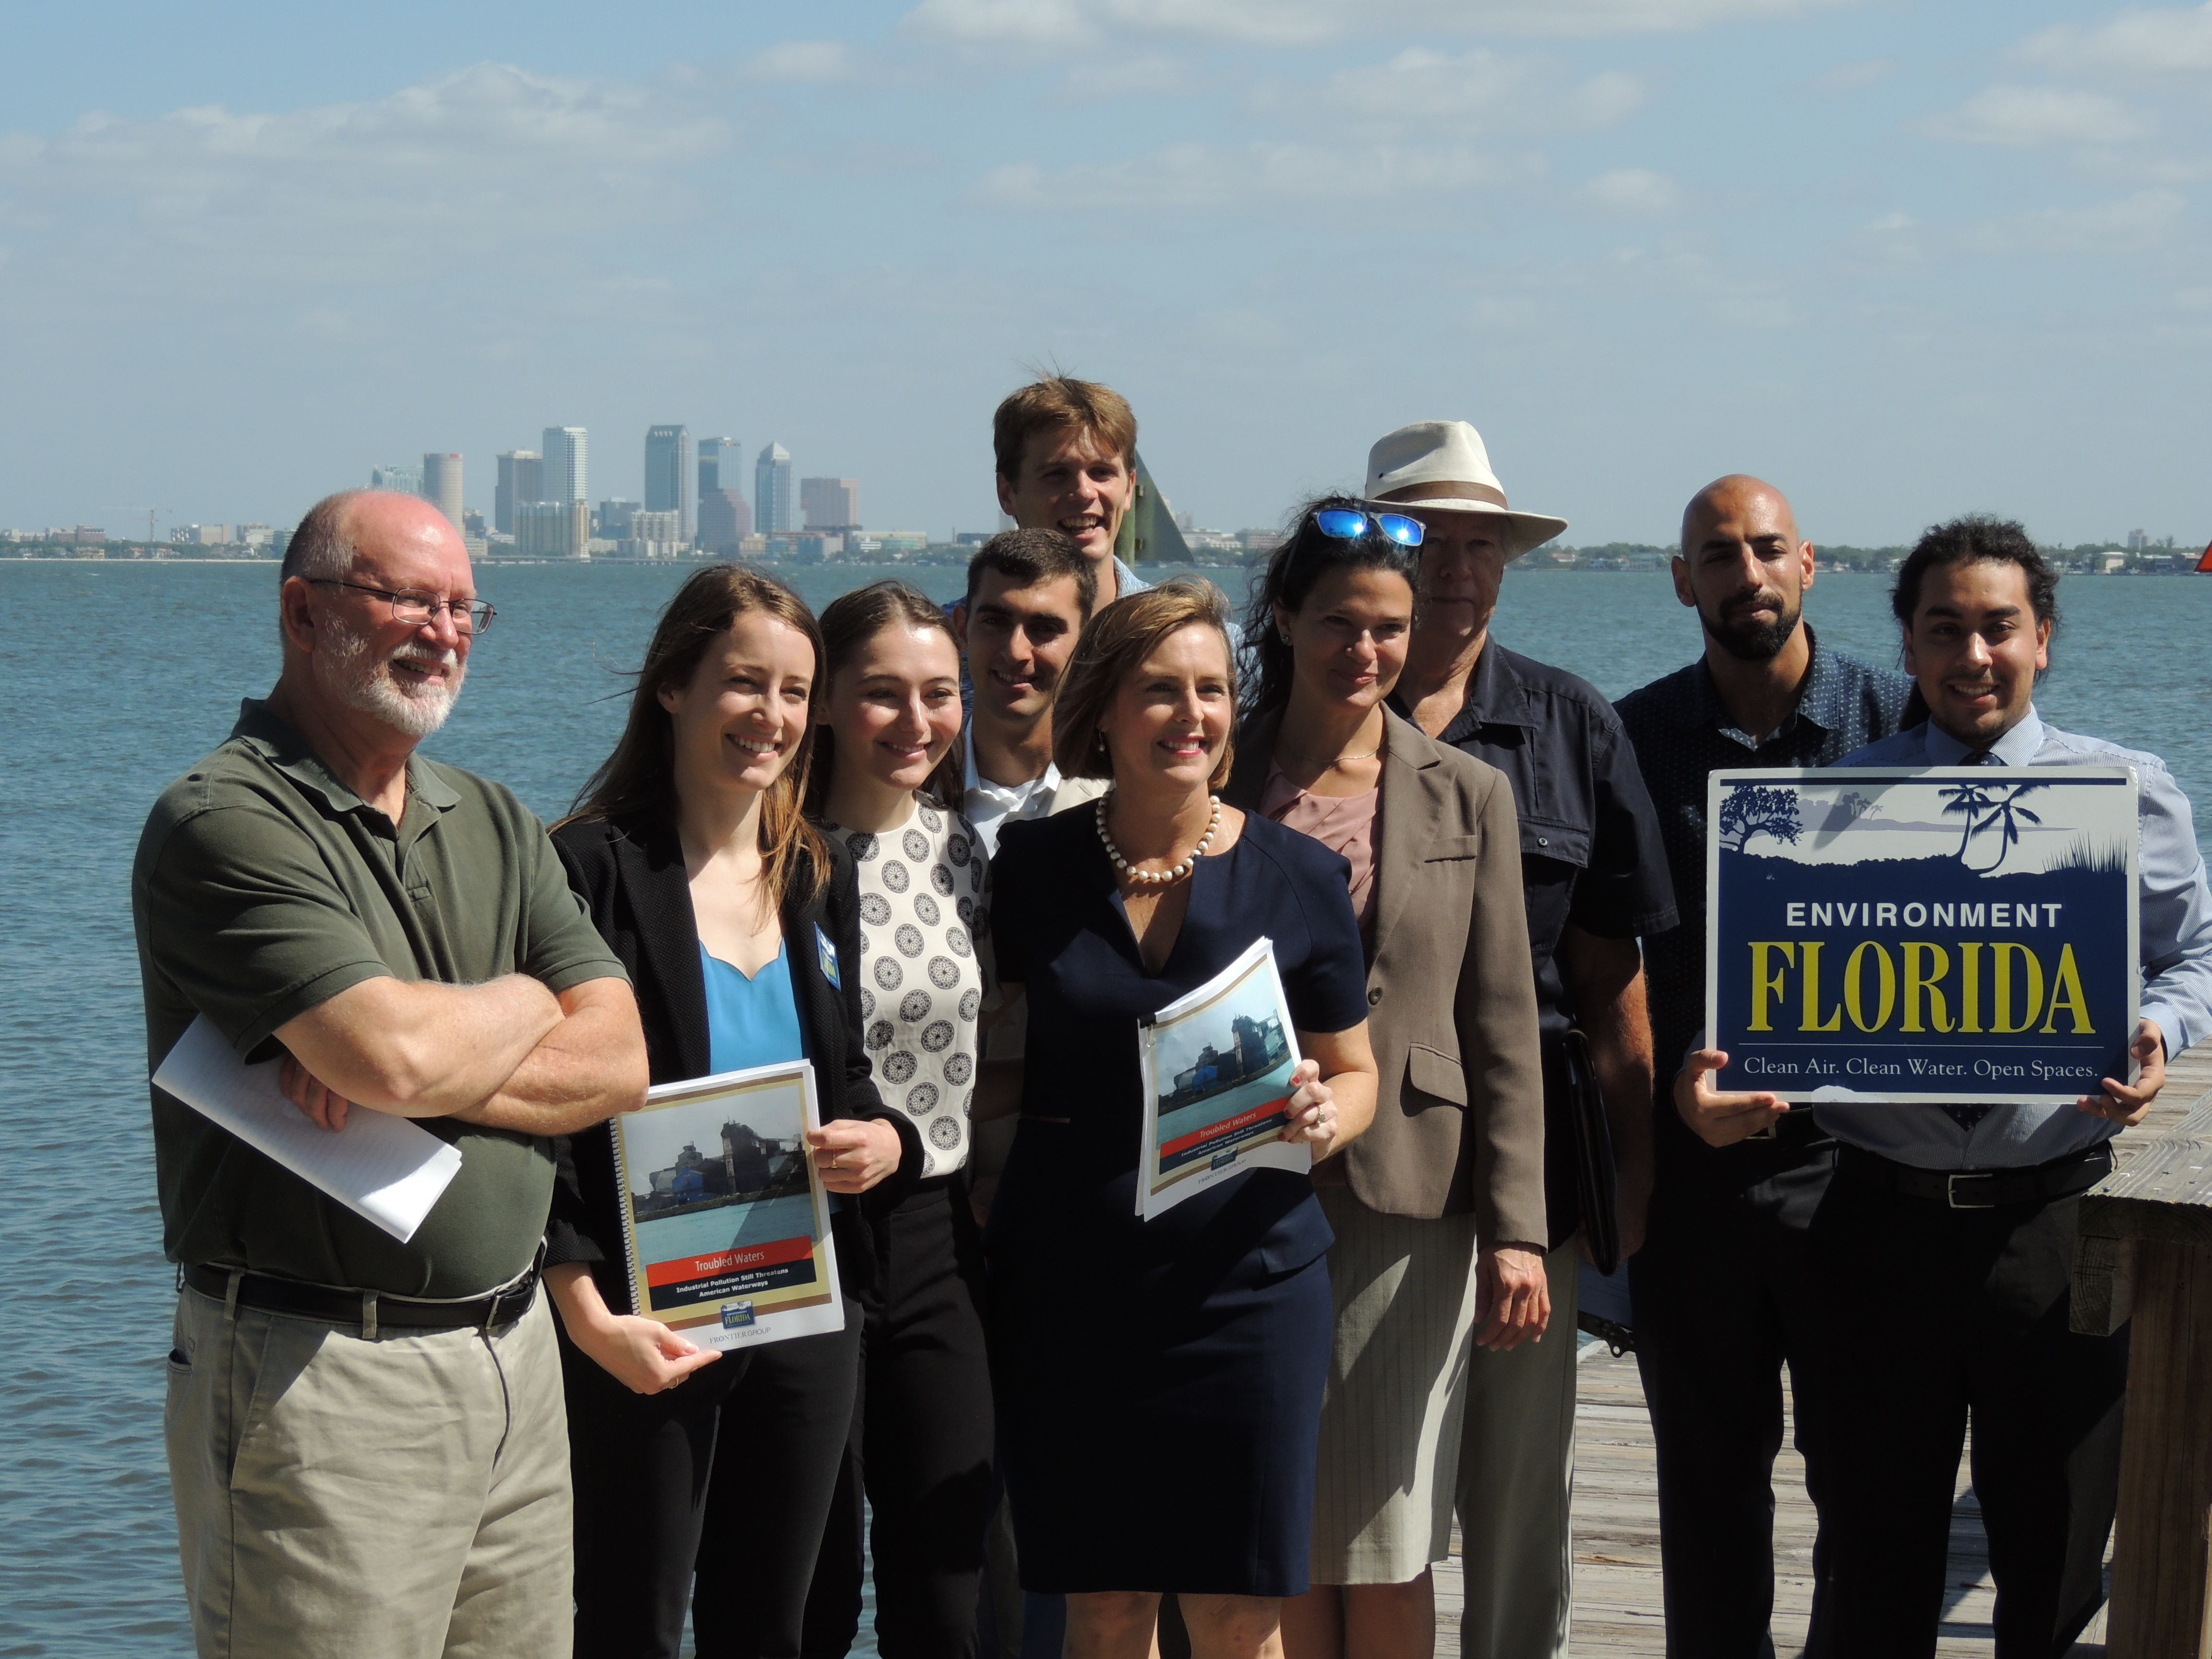 Environment Florida releases report called Troubled Waters on industrial pollution